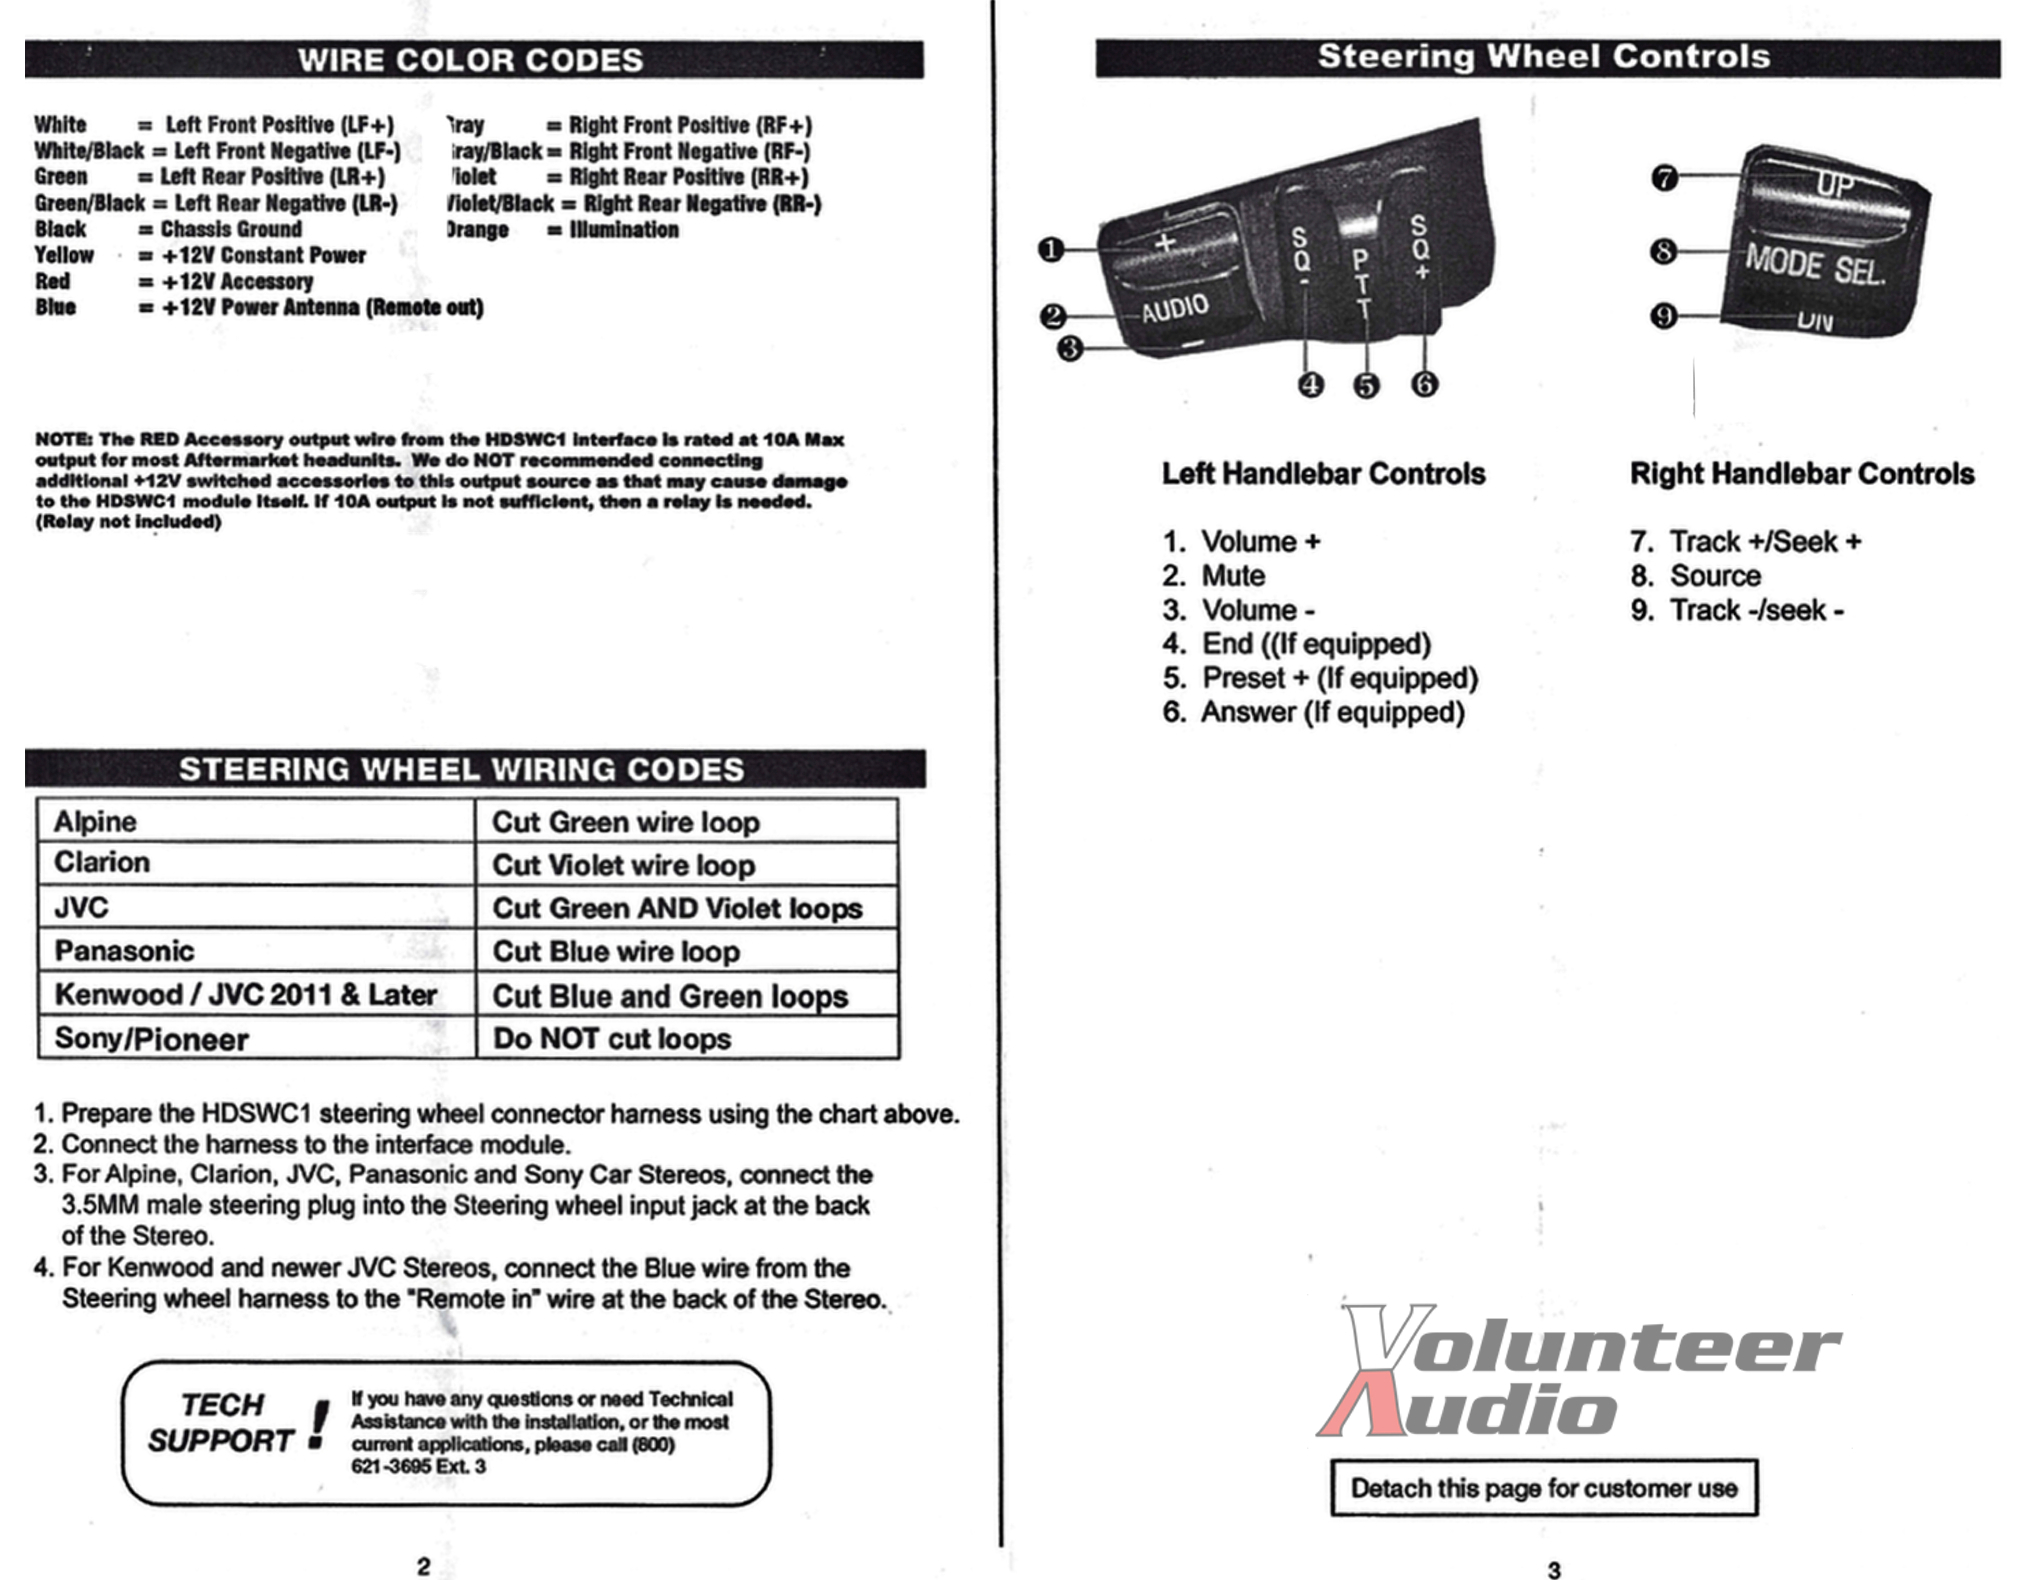 inst1 sony marine stereo wiring diagram dolgular com scosche loc2sl wiring diagram at bayanpartner.co